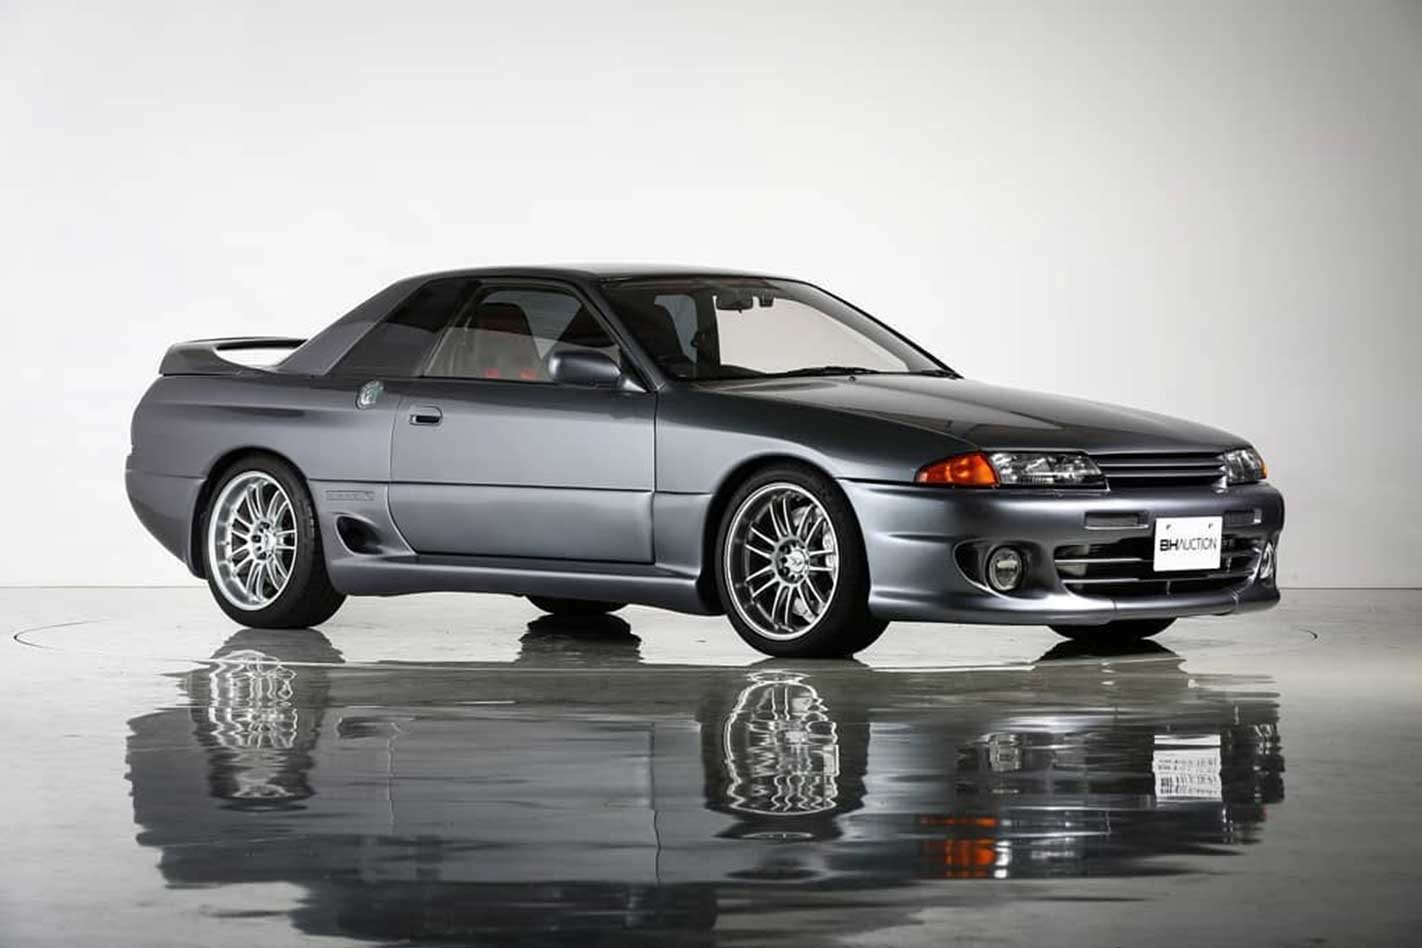 Rare 1993 Hks Zero R R32 Skyline Coming To Melbourne After Auction